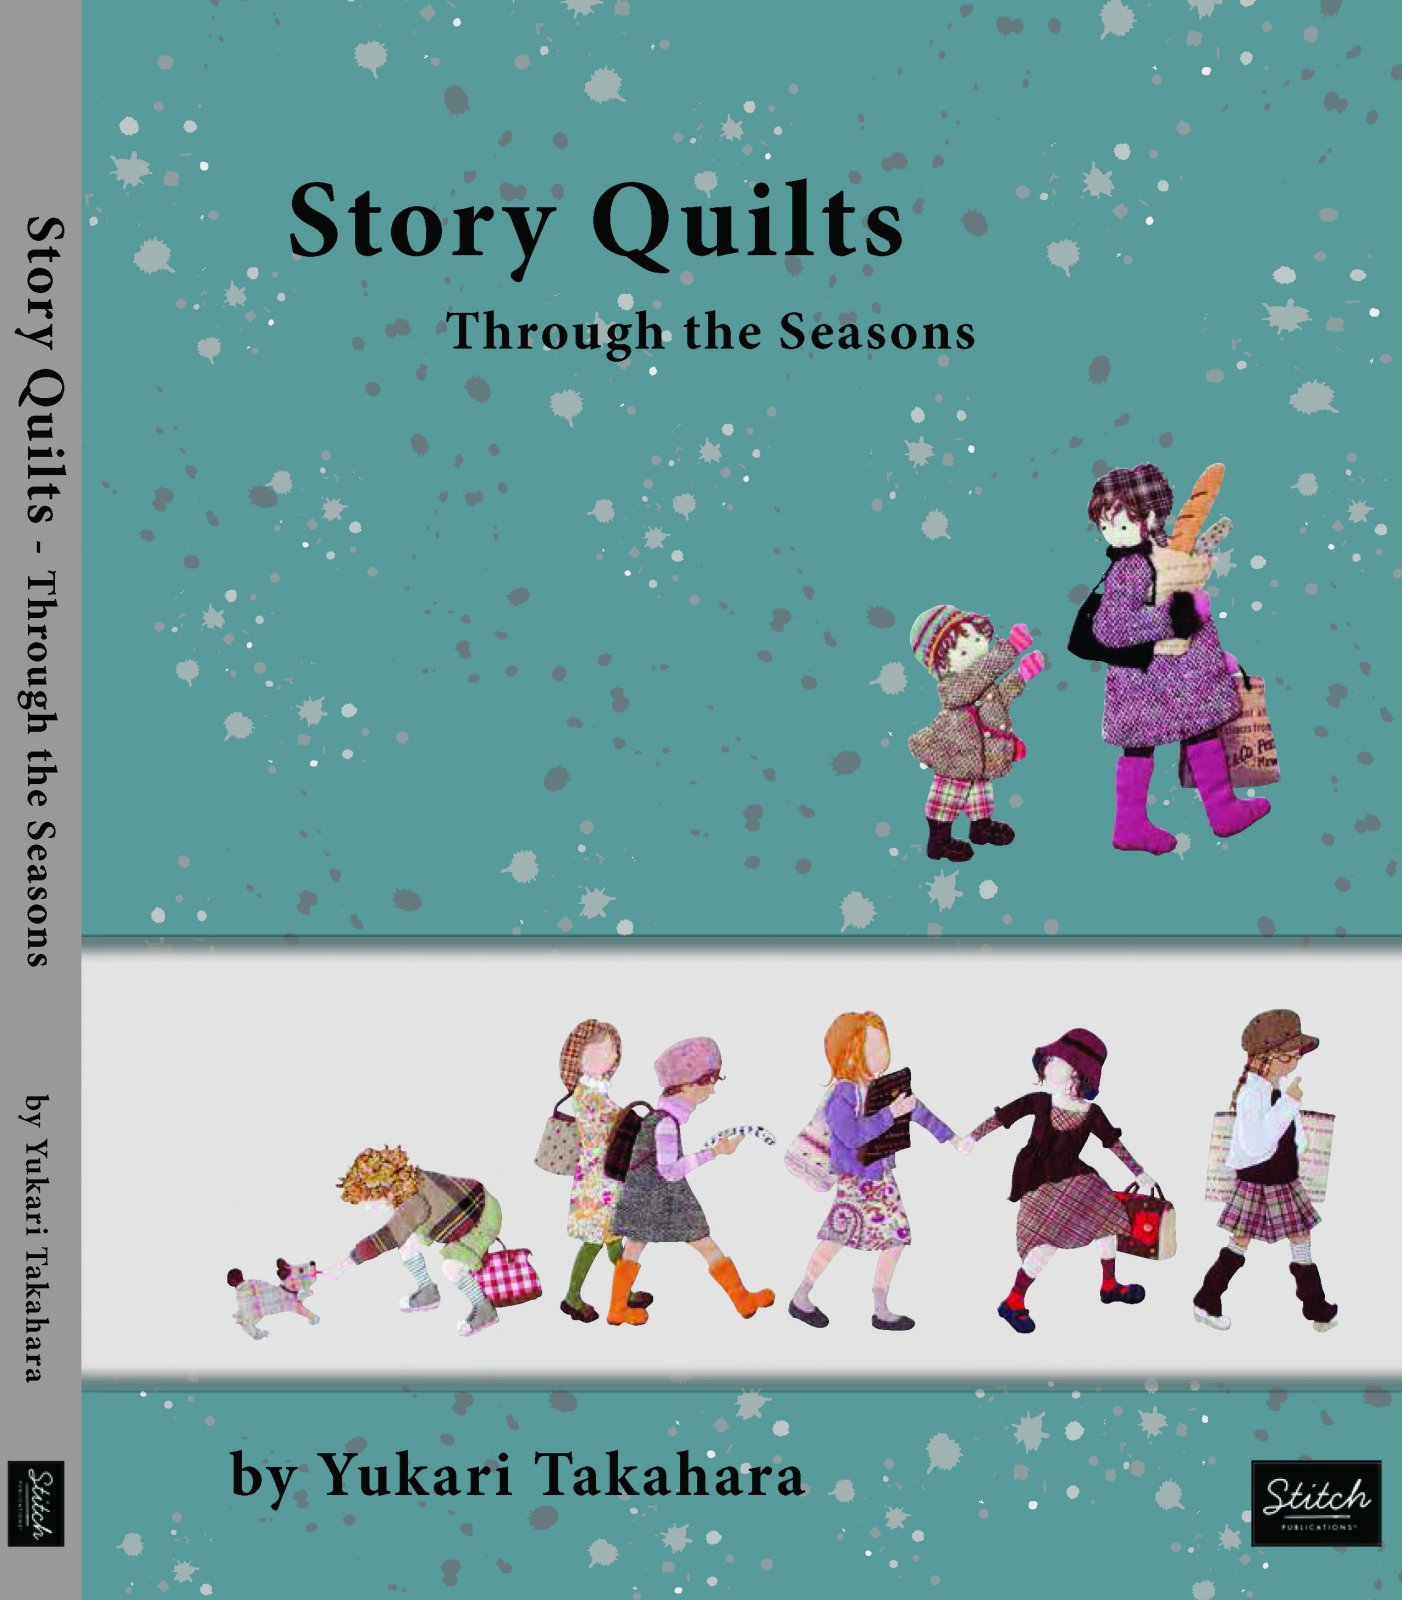 Story Quilts - Through the Seasons